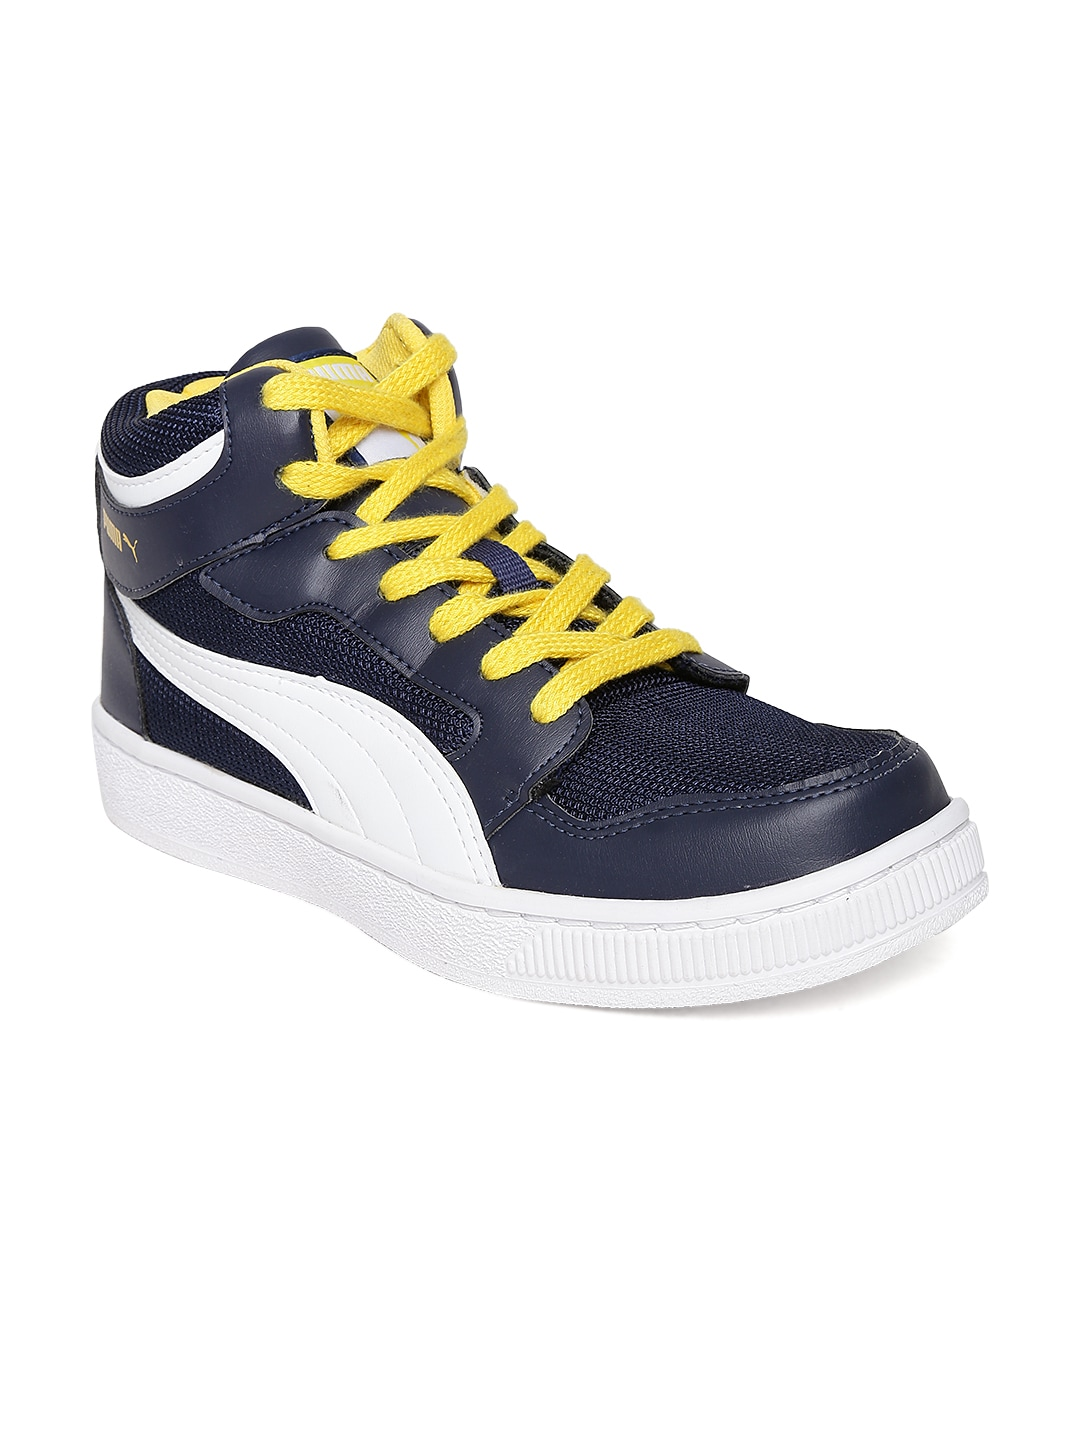 bfda1000903ef8 Puma Navy Blue Blue Sneakers - Buy Puma Navy Blue Blue Sneakers online in  India